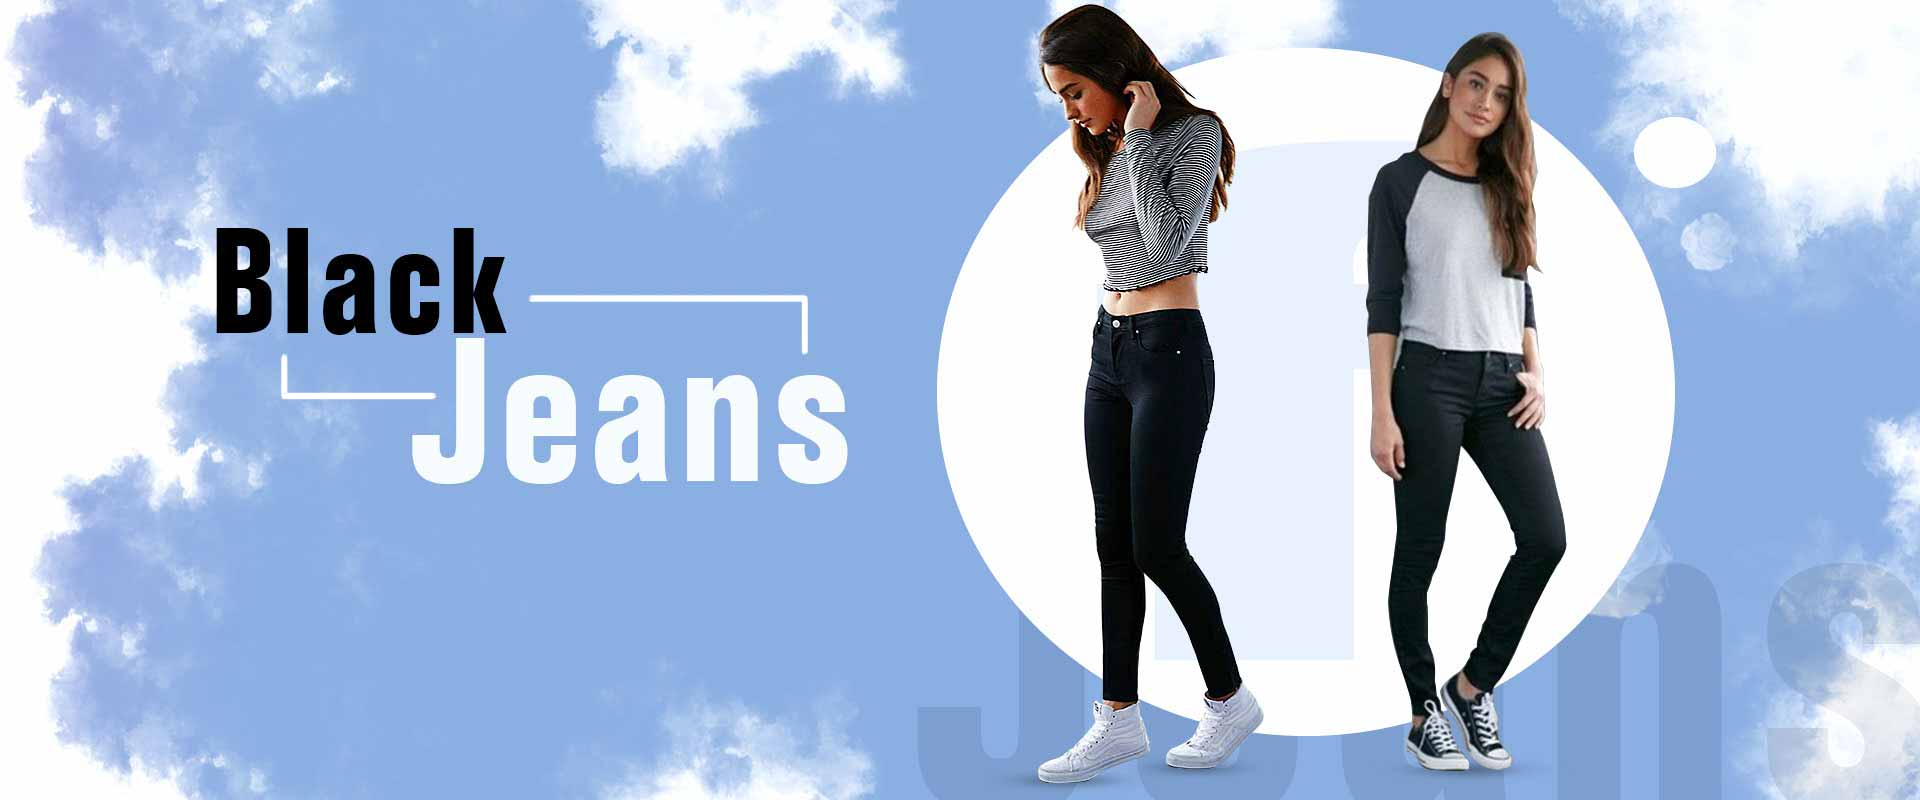 Black Jeans Suppliers